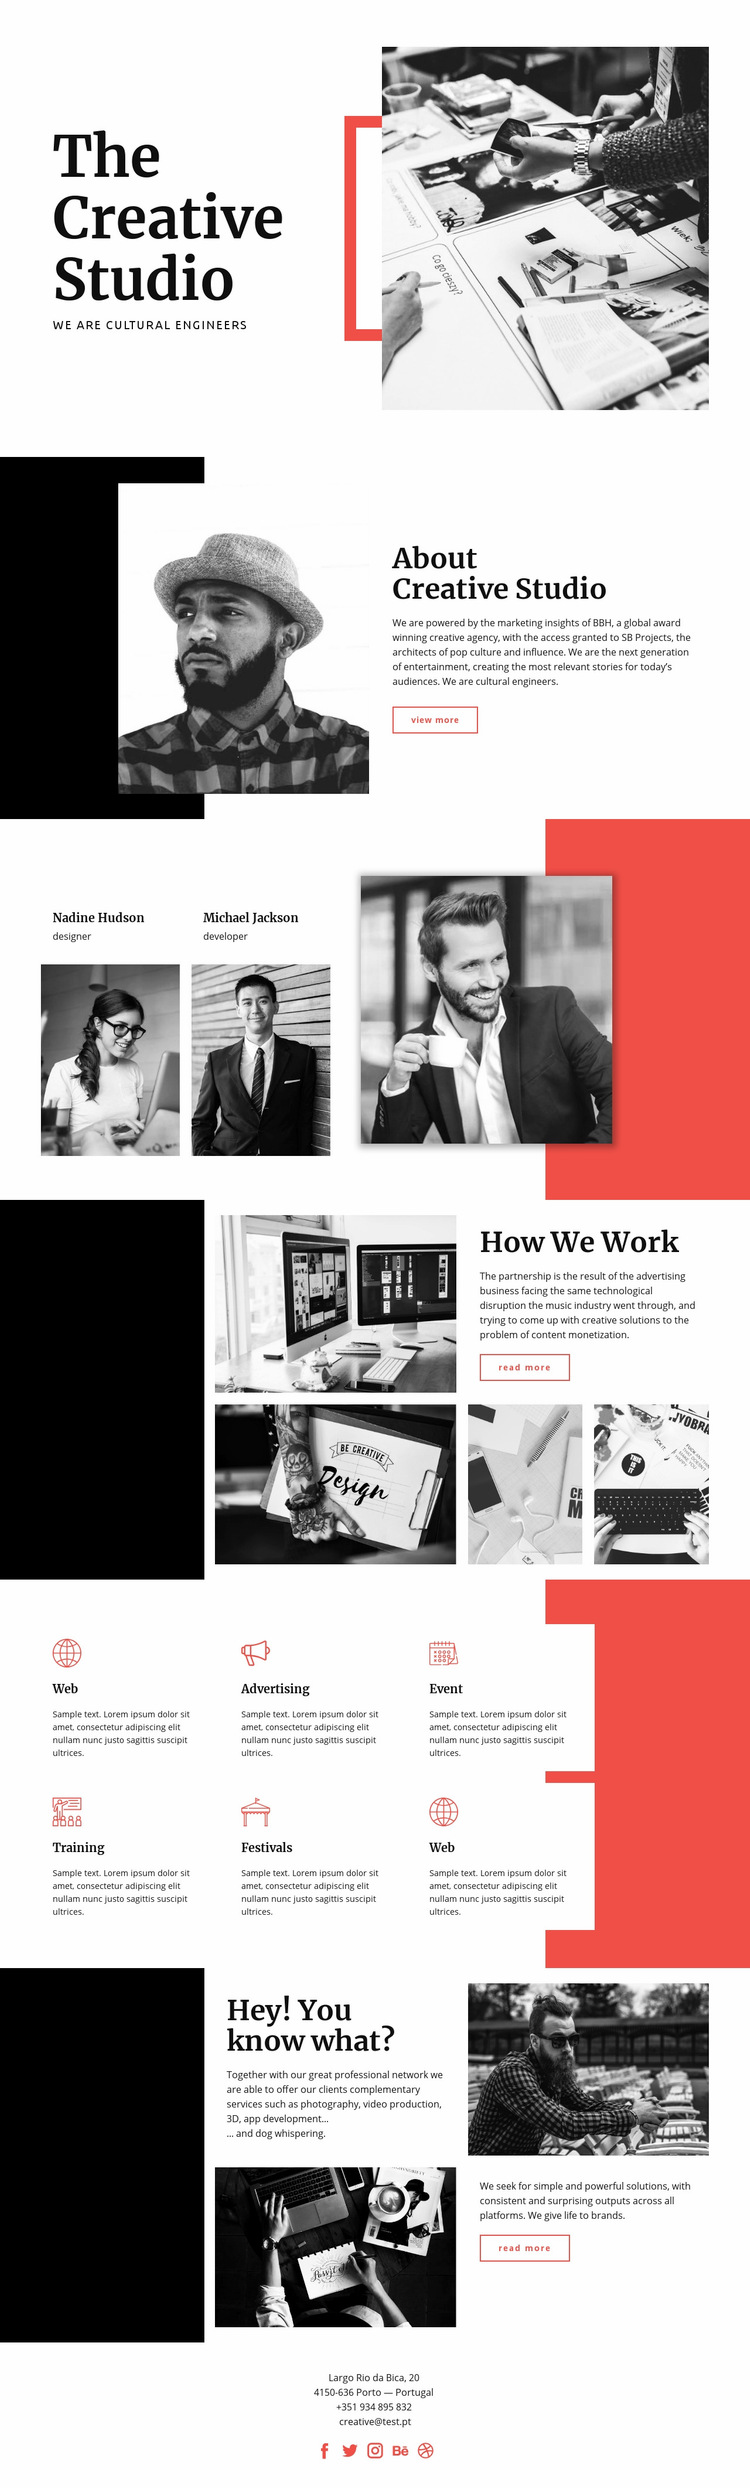 The Creative Studio Web Page Design